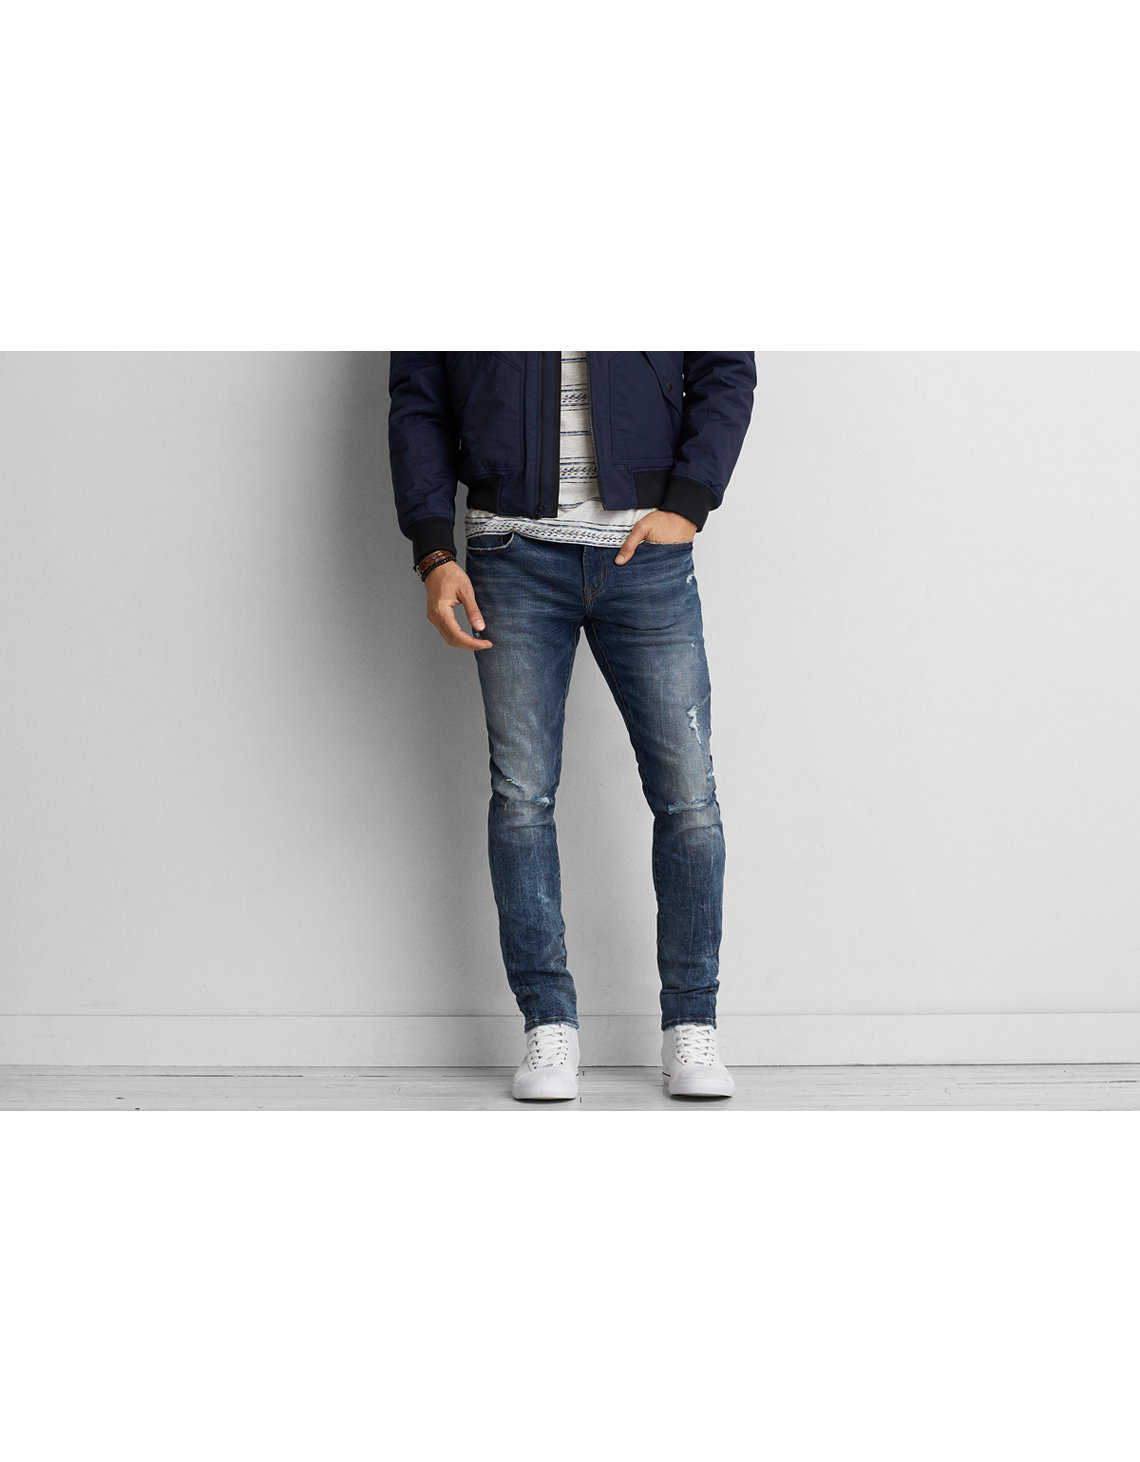 AE 360 Extreme Flex Skinny Jean - Stretch Cotton Skinny Jean American Eagle Outfitters